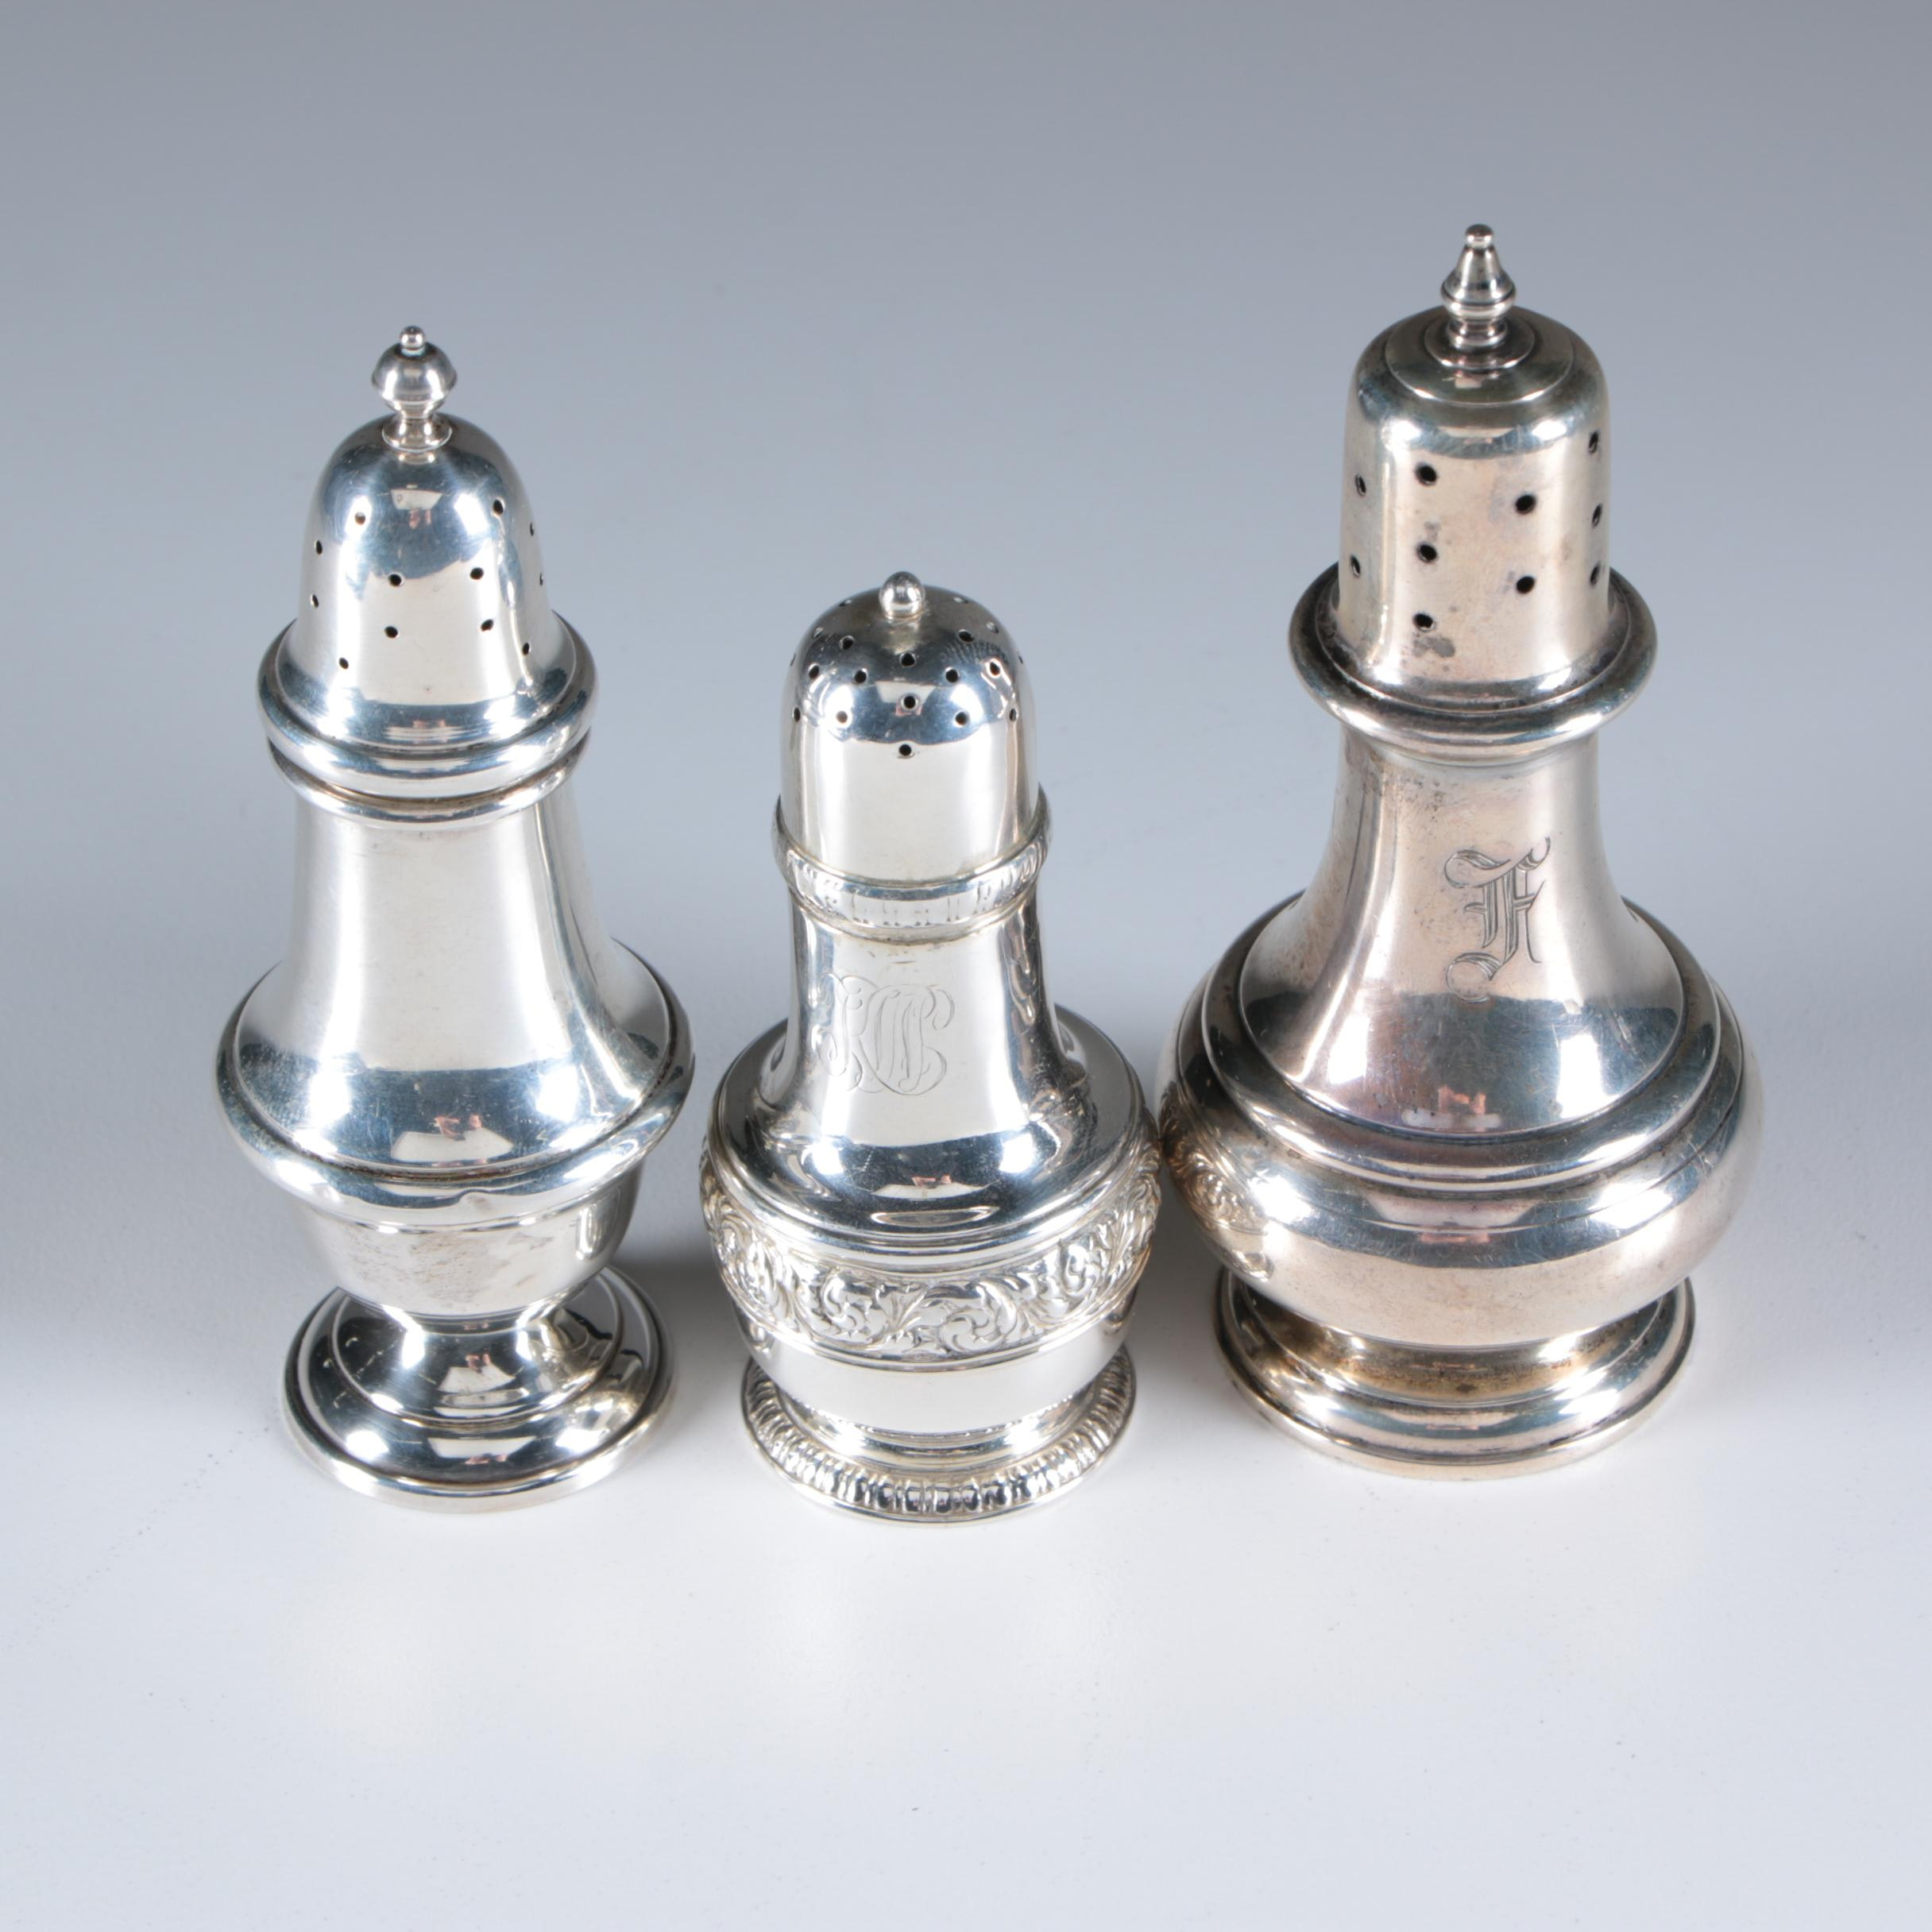 Sterling Silver Shakers featuring Tiffany & Co. and Gorham, Early/Mid 20th C.